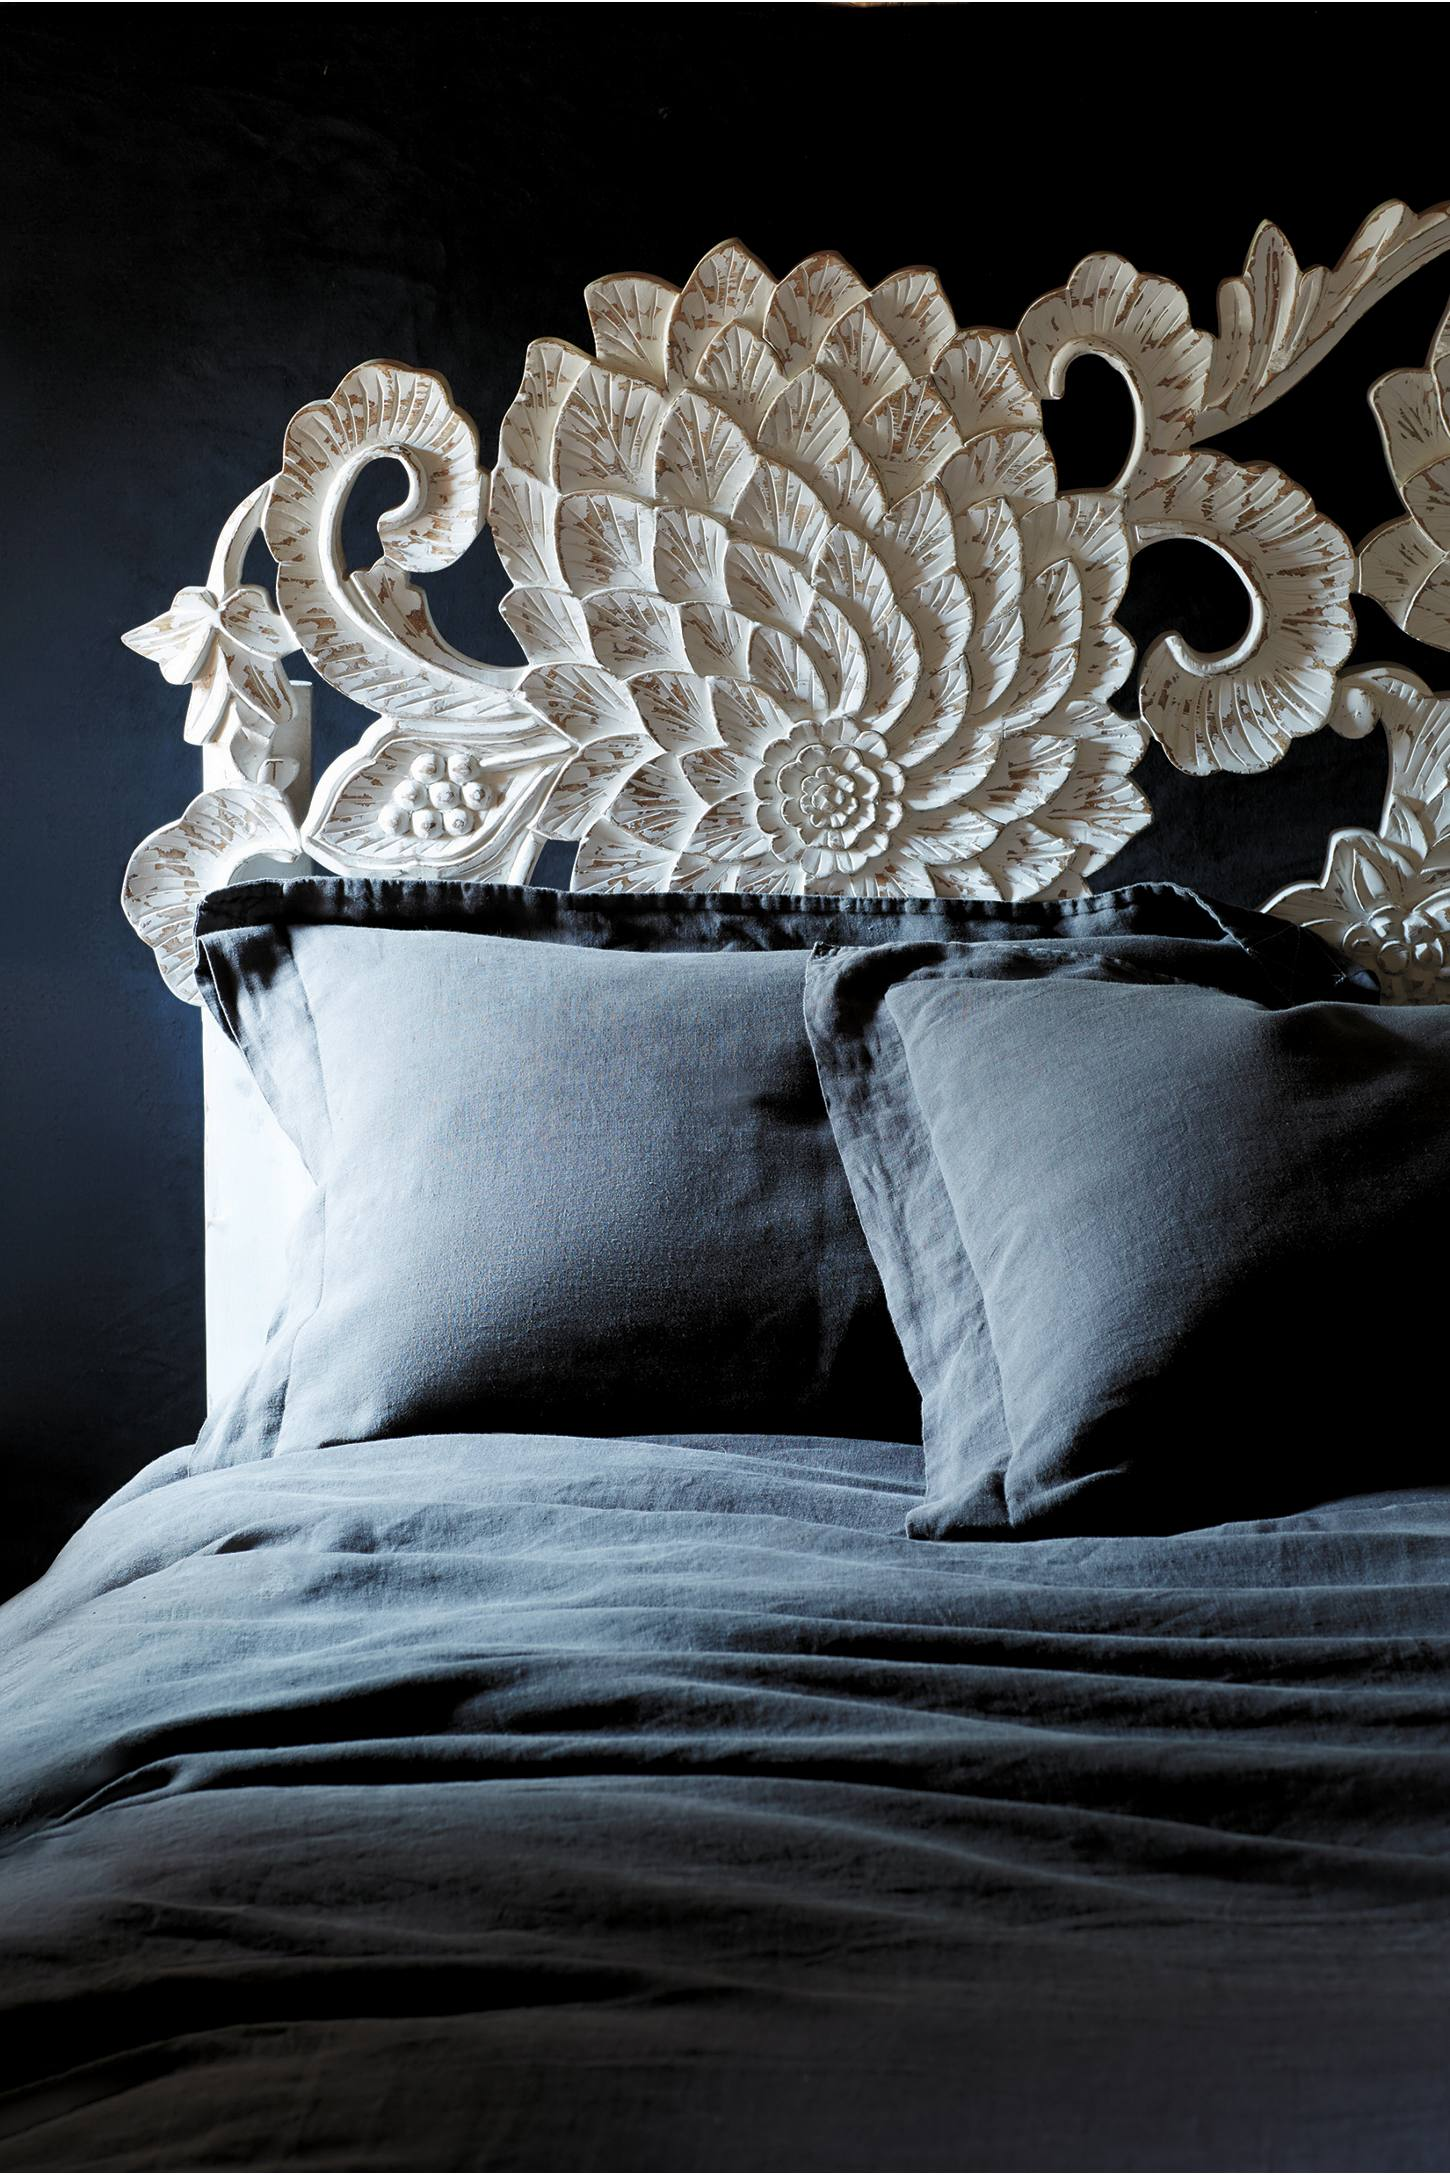 Slide View: 9: Handcarved Lotus Bed